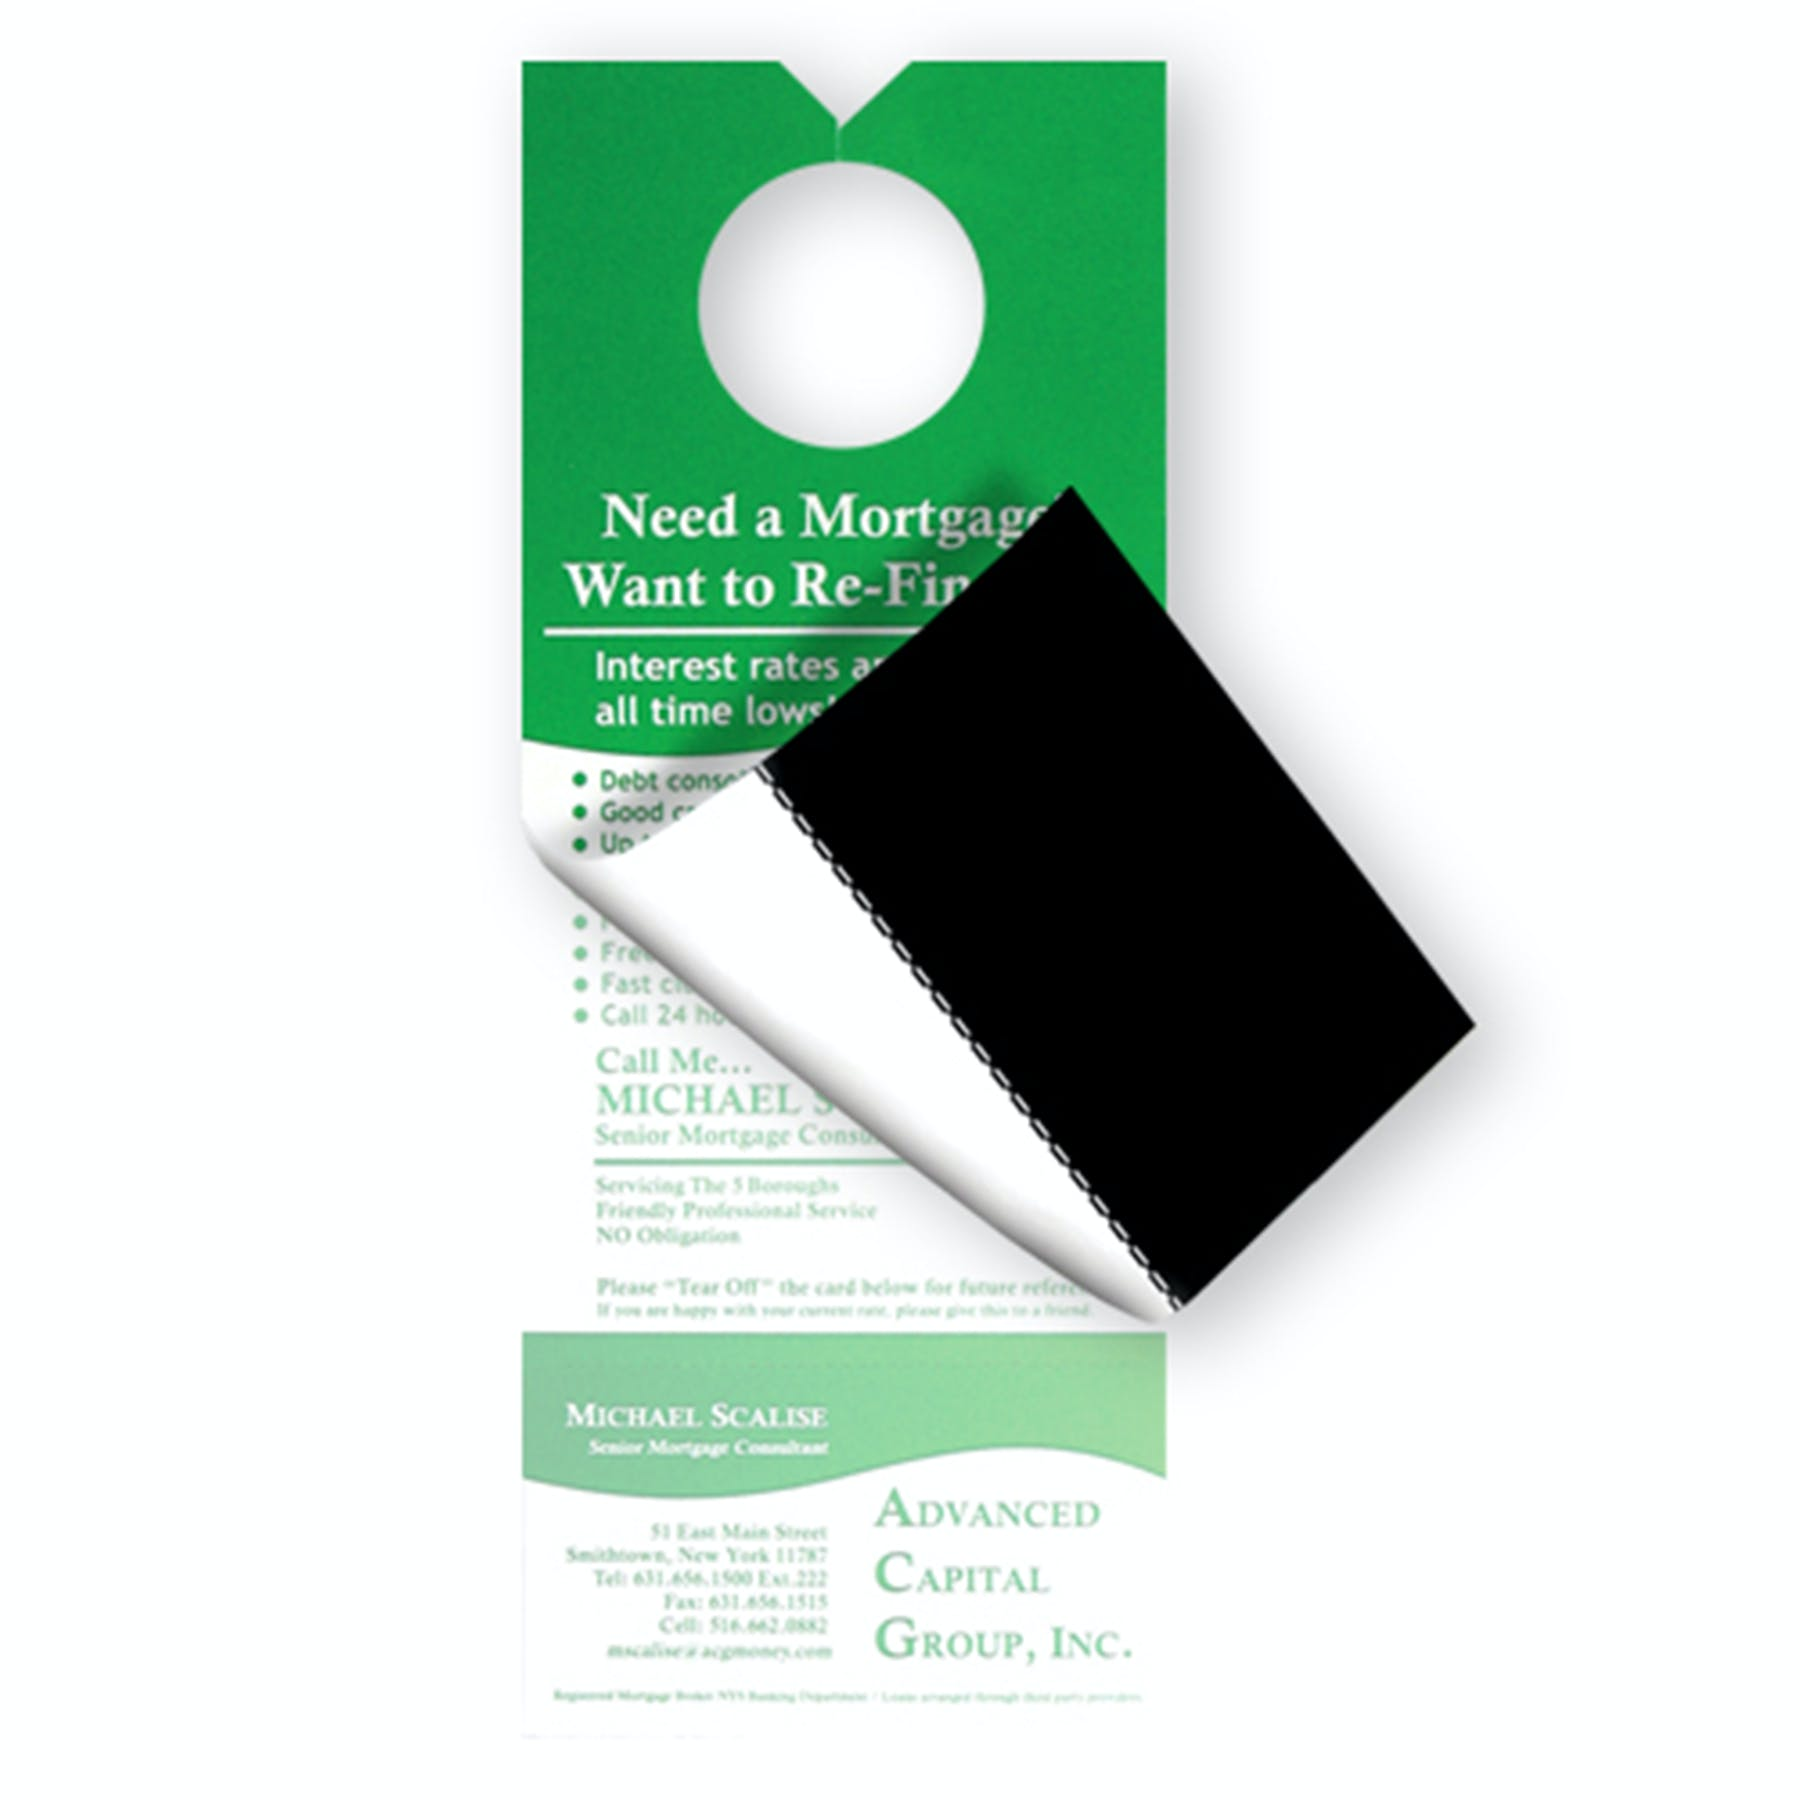 Custom Door Hanger with Business Card Magnet (Item # AELPQ-DDRVV) Promotional Paper Product sold by InkEasy